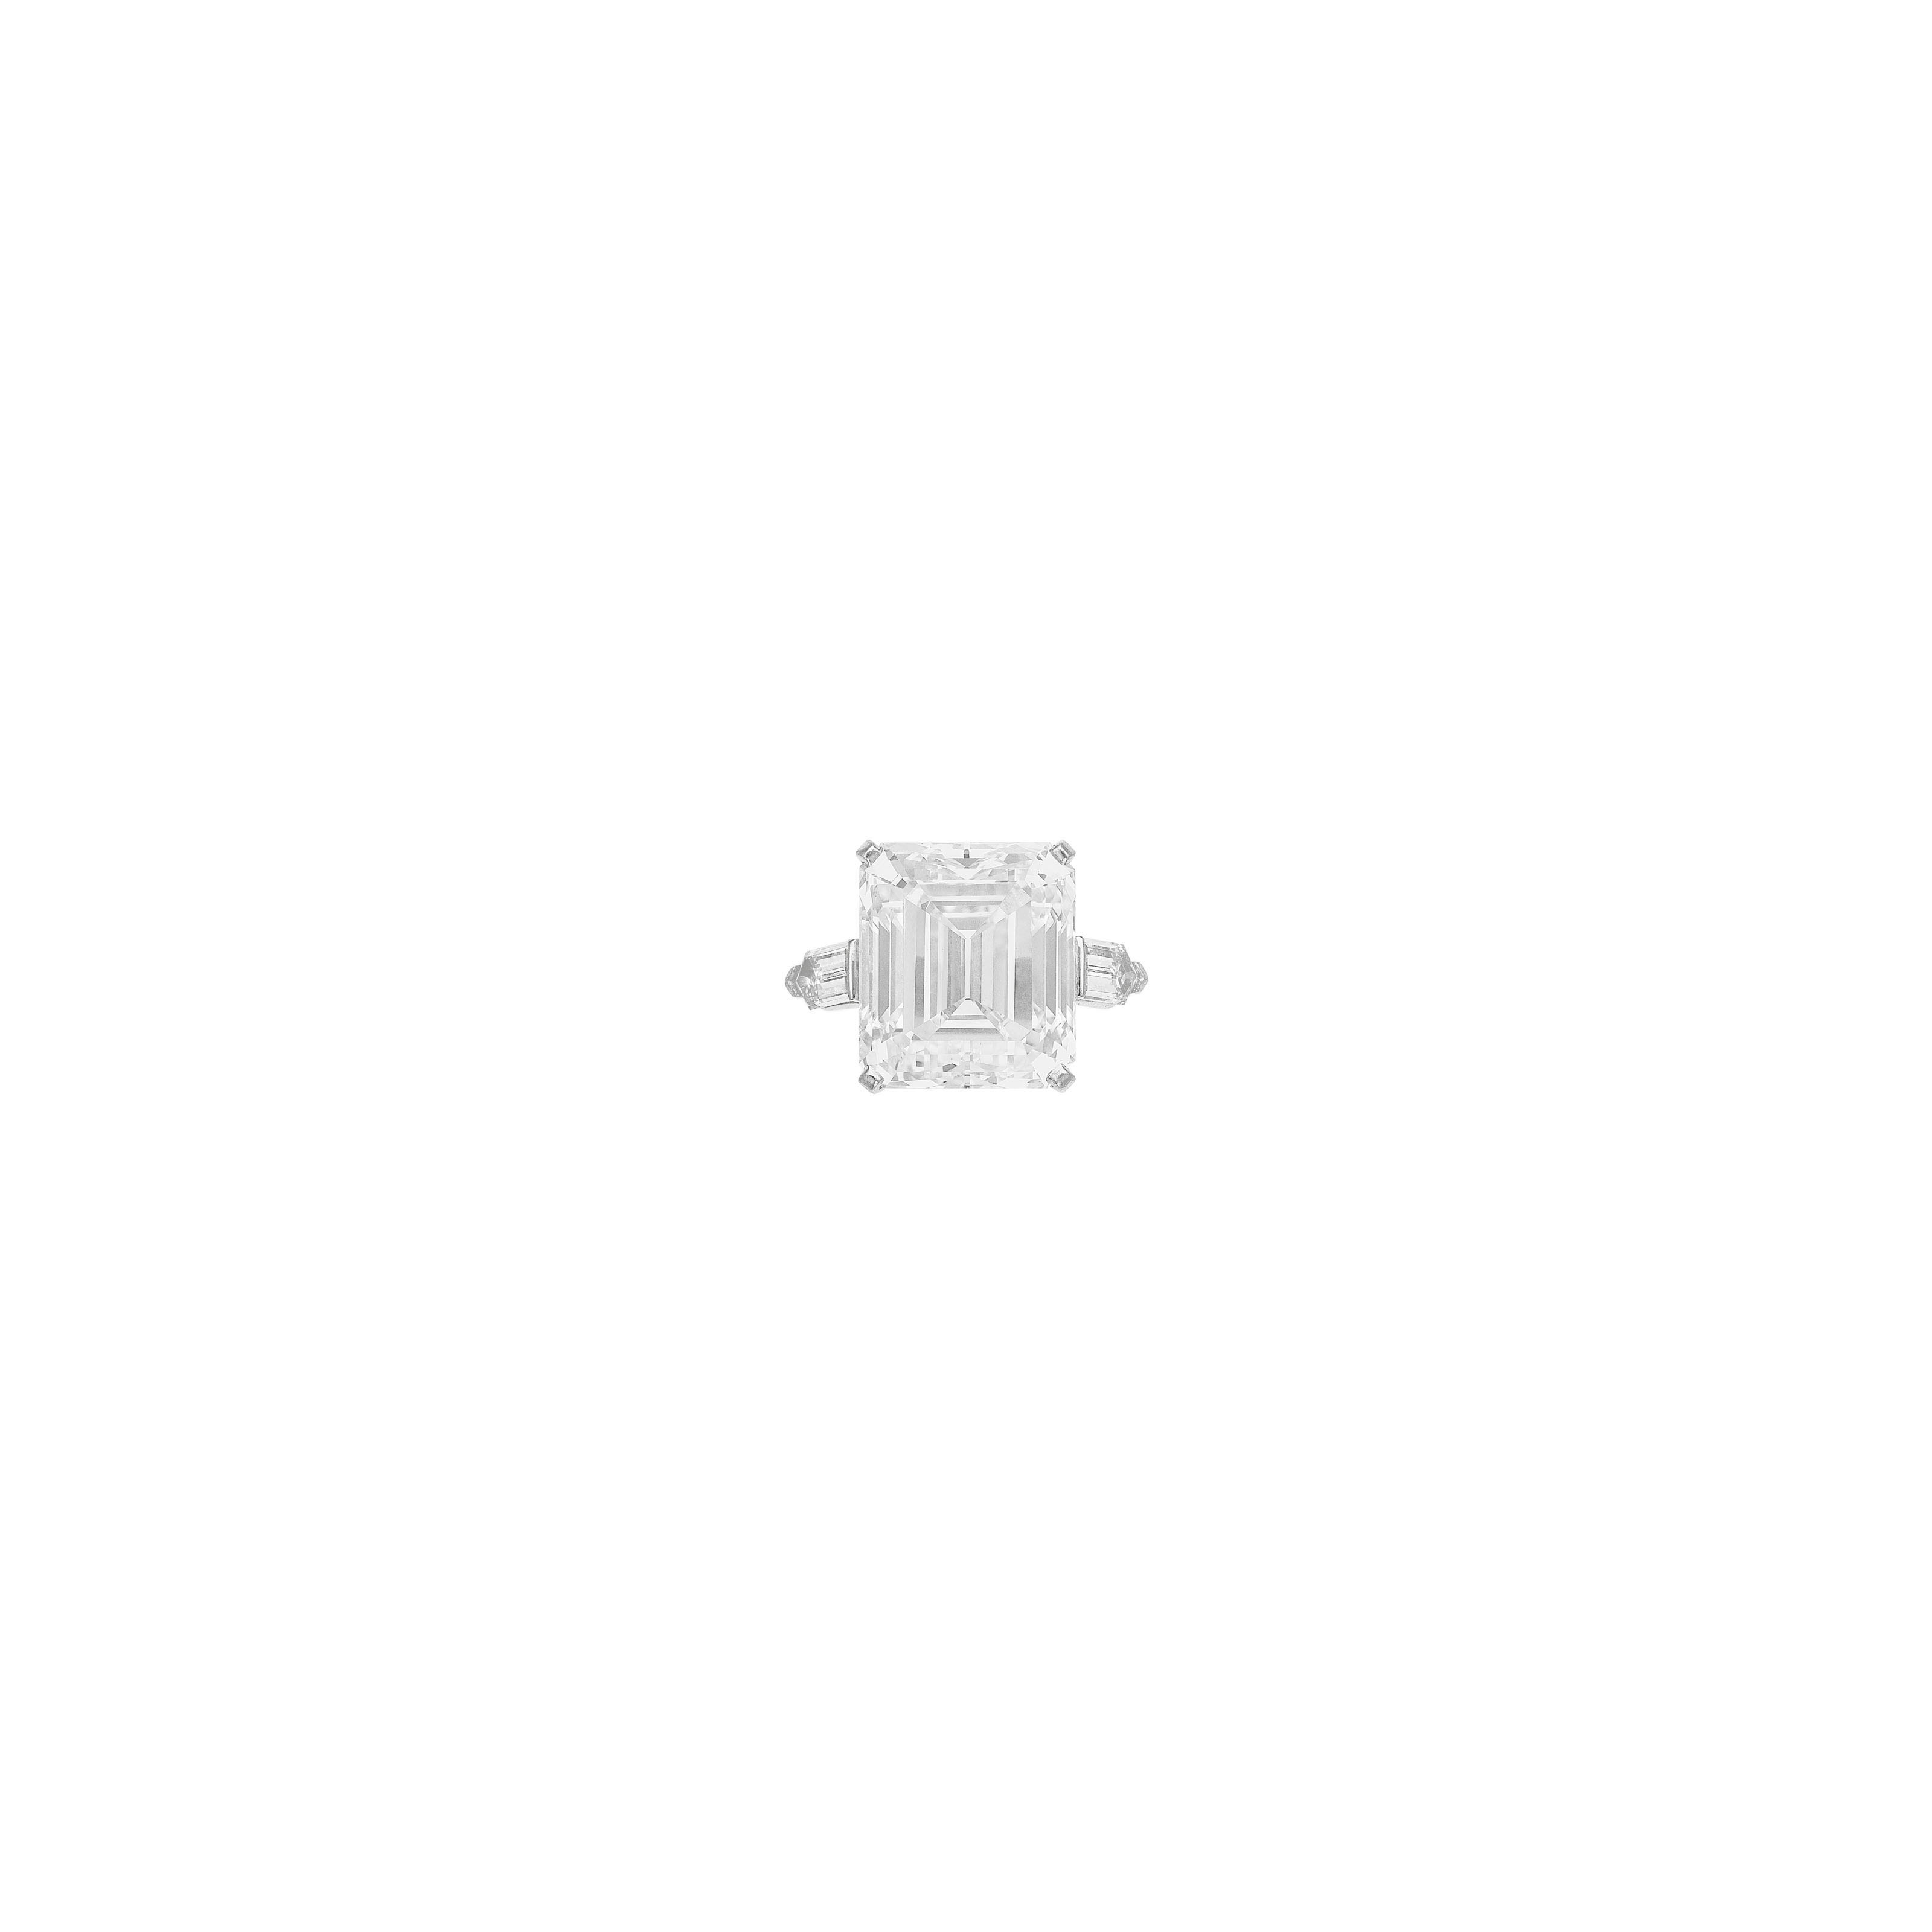 DIAMOND RING, CARVIN FRENCH